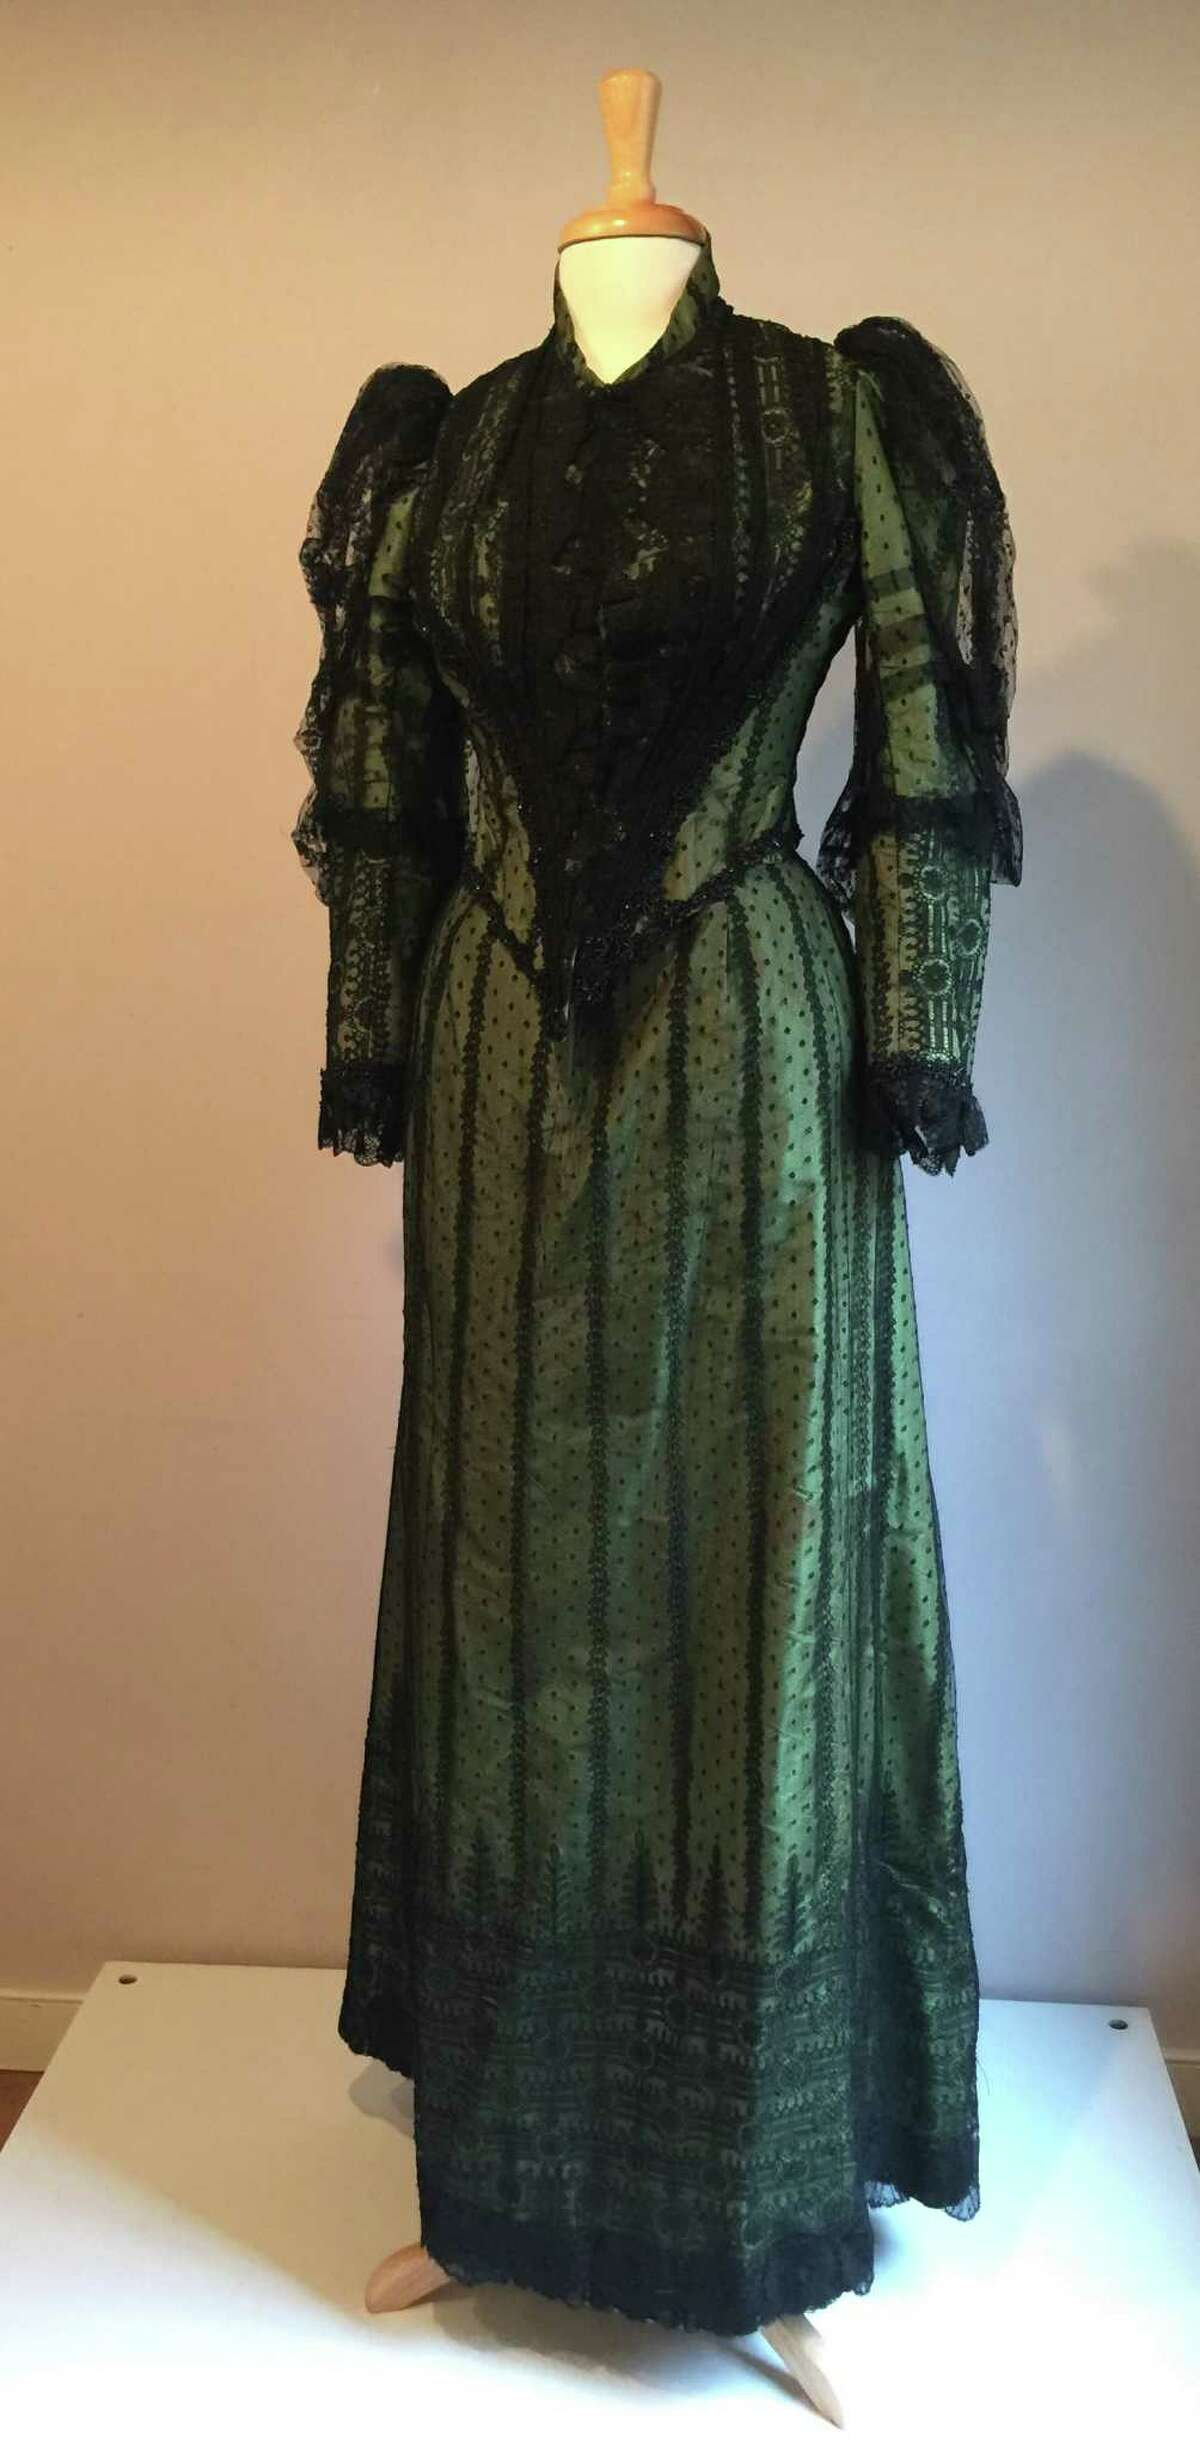 An 1890s dress believed to have belonged to Hannah Ambler or her sister Elizabeth, from Wilton Historical Society's virtual exhibition,